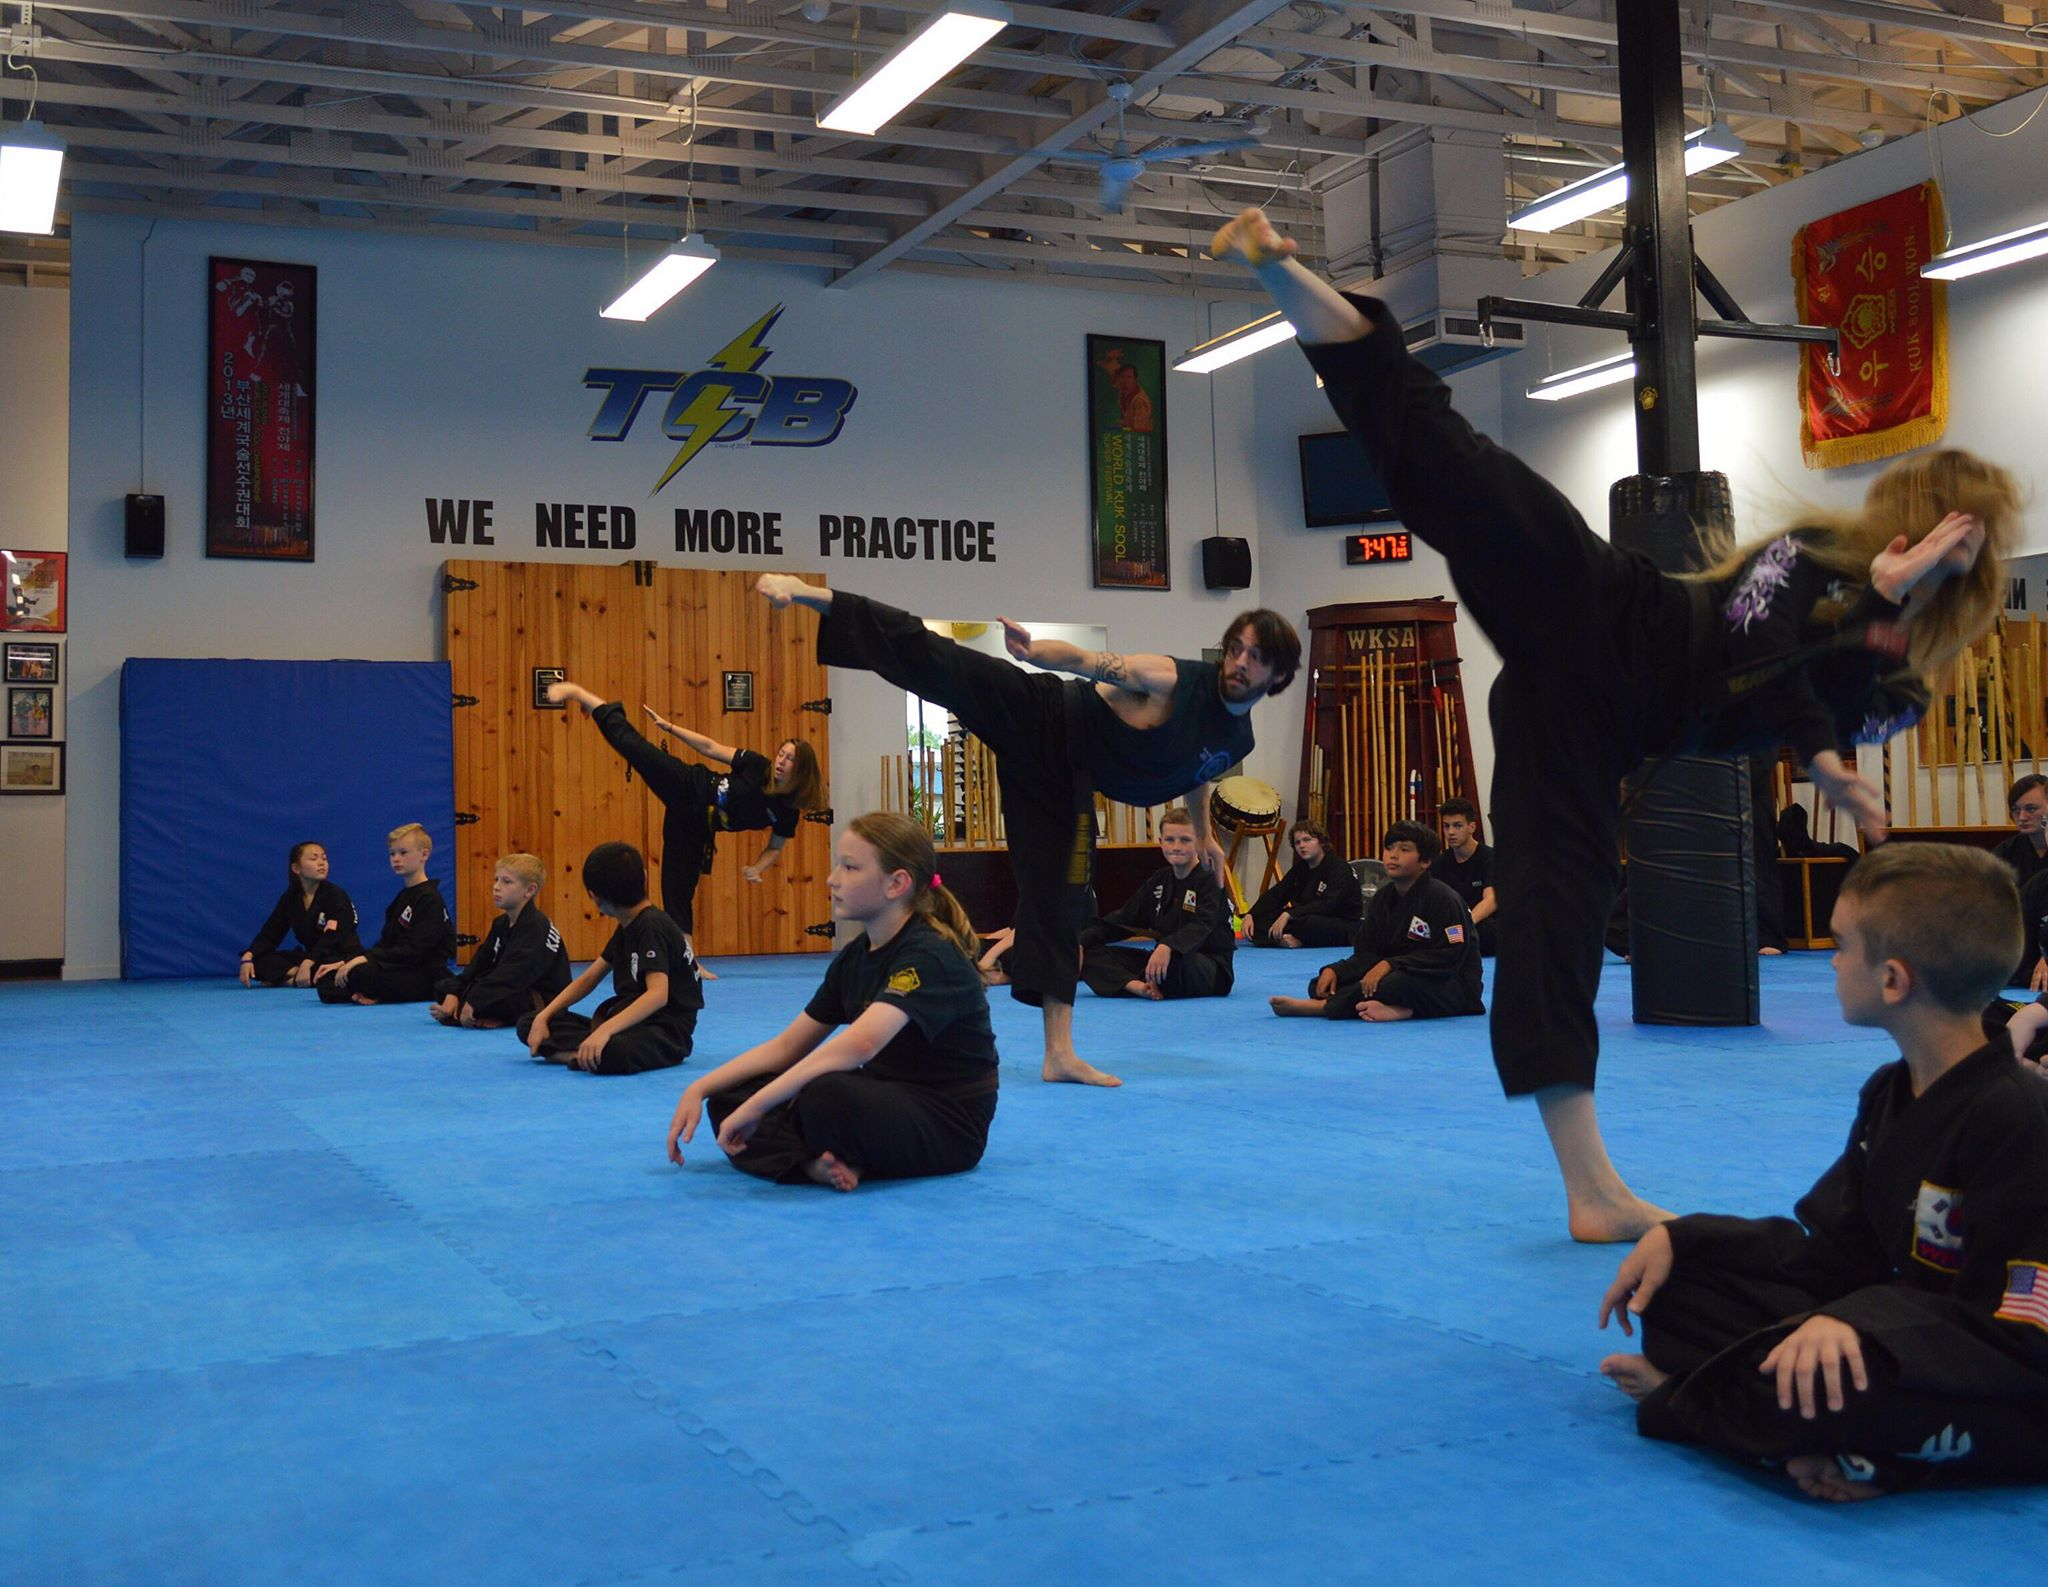 Missouri's Top Rated Local® Martial Arts Award Winner: Kuk Sool Won O'Fallon